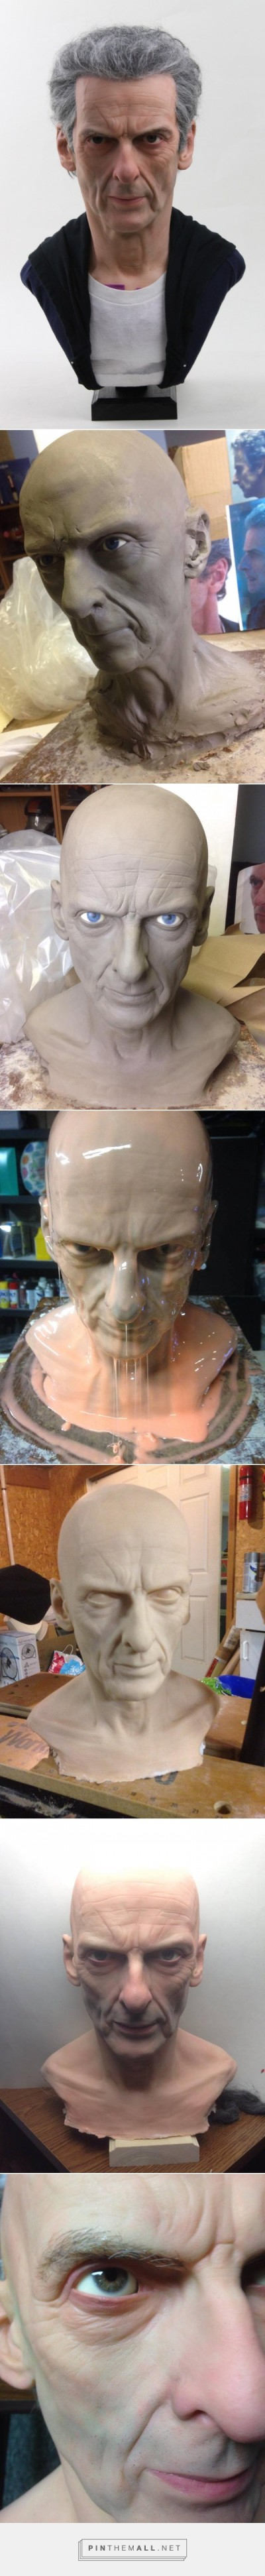 Technique sculpture hyper realiste – 12th Doctor (Peter Capaldi) Life-Sized Sculpture by mrstevenrichter –  http://imgur.com/gallery/31NDo